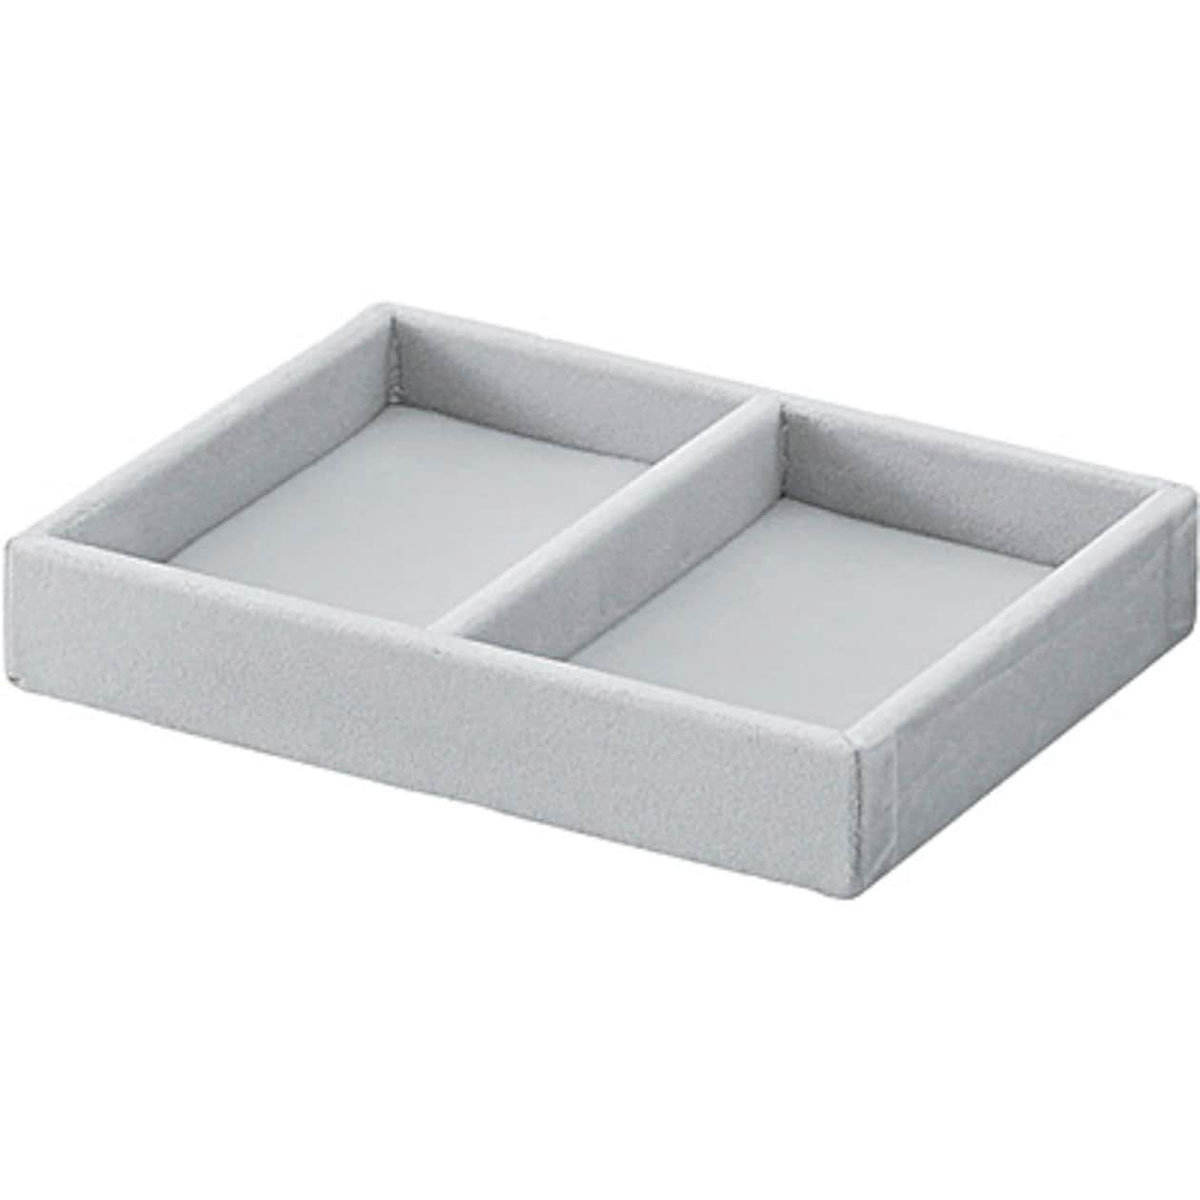 Velour Longitudinal Tray